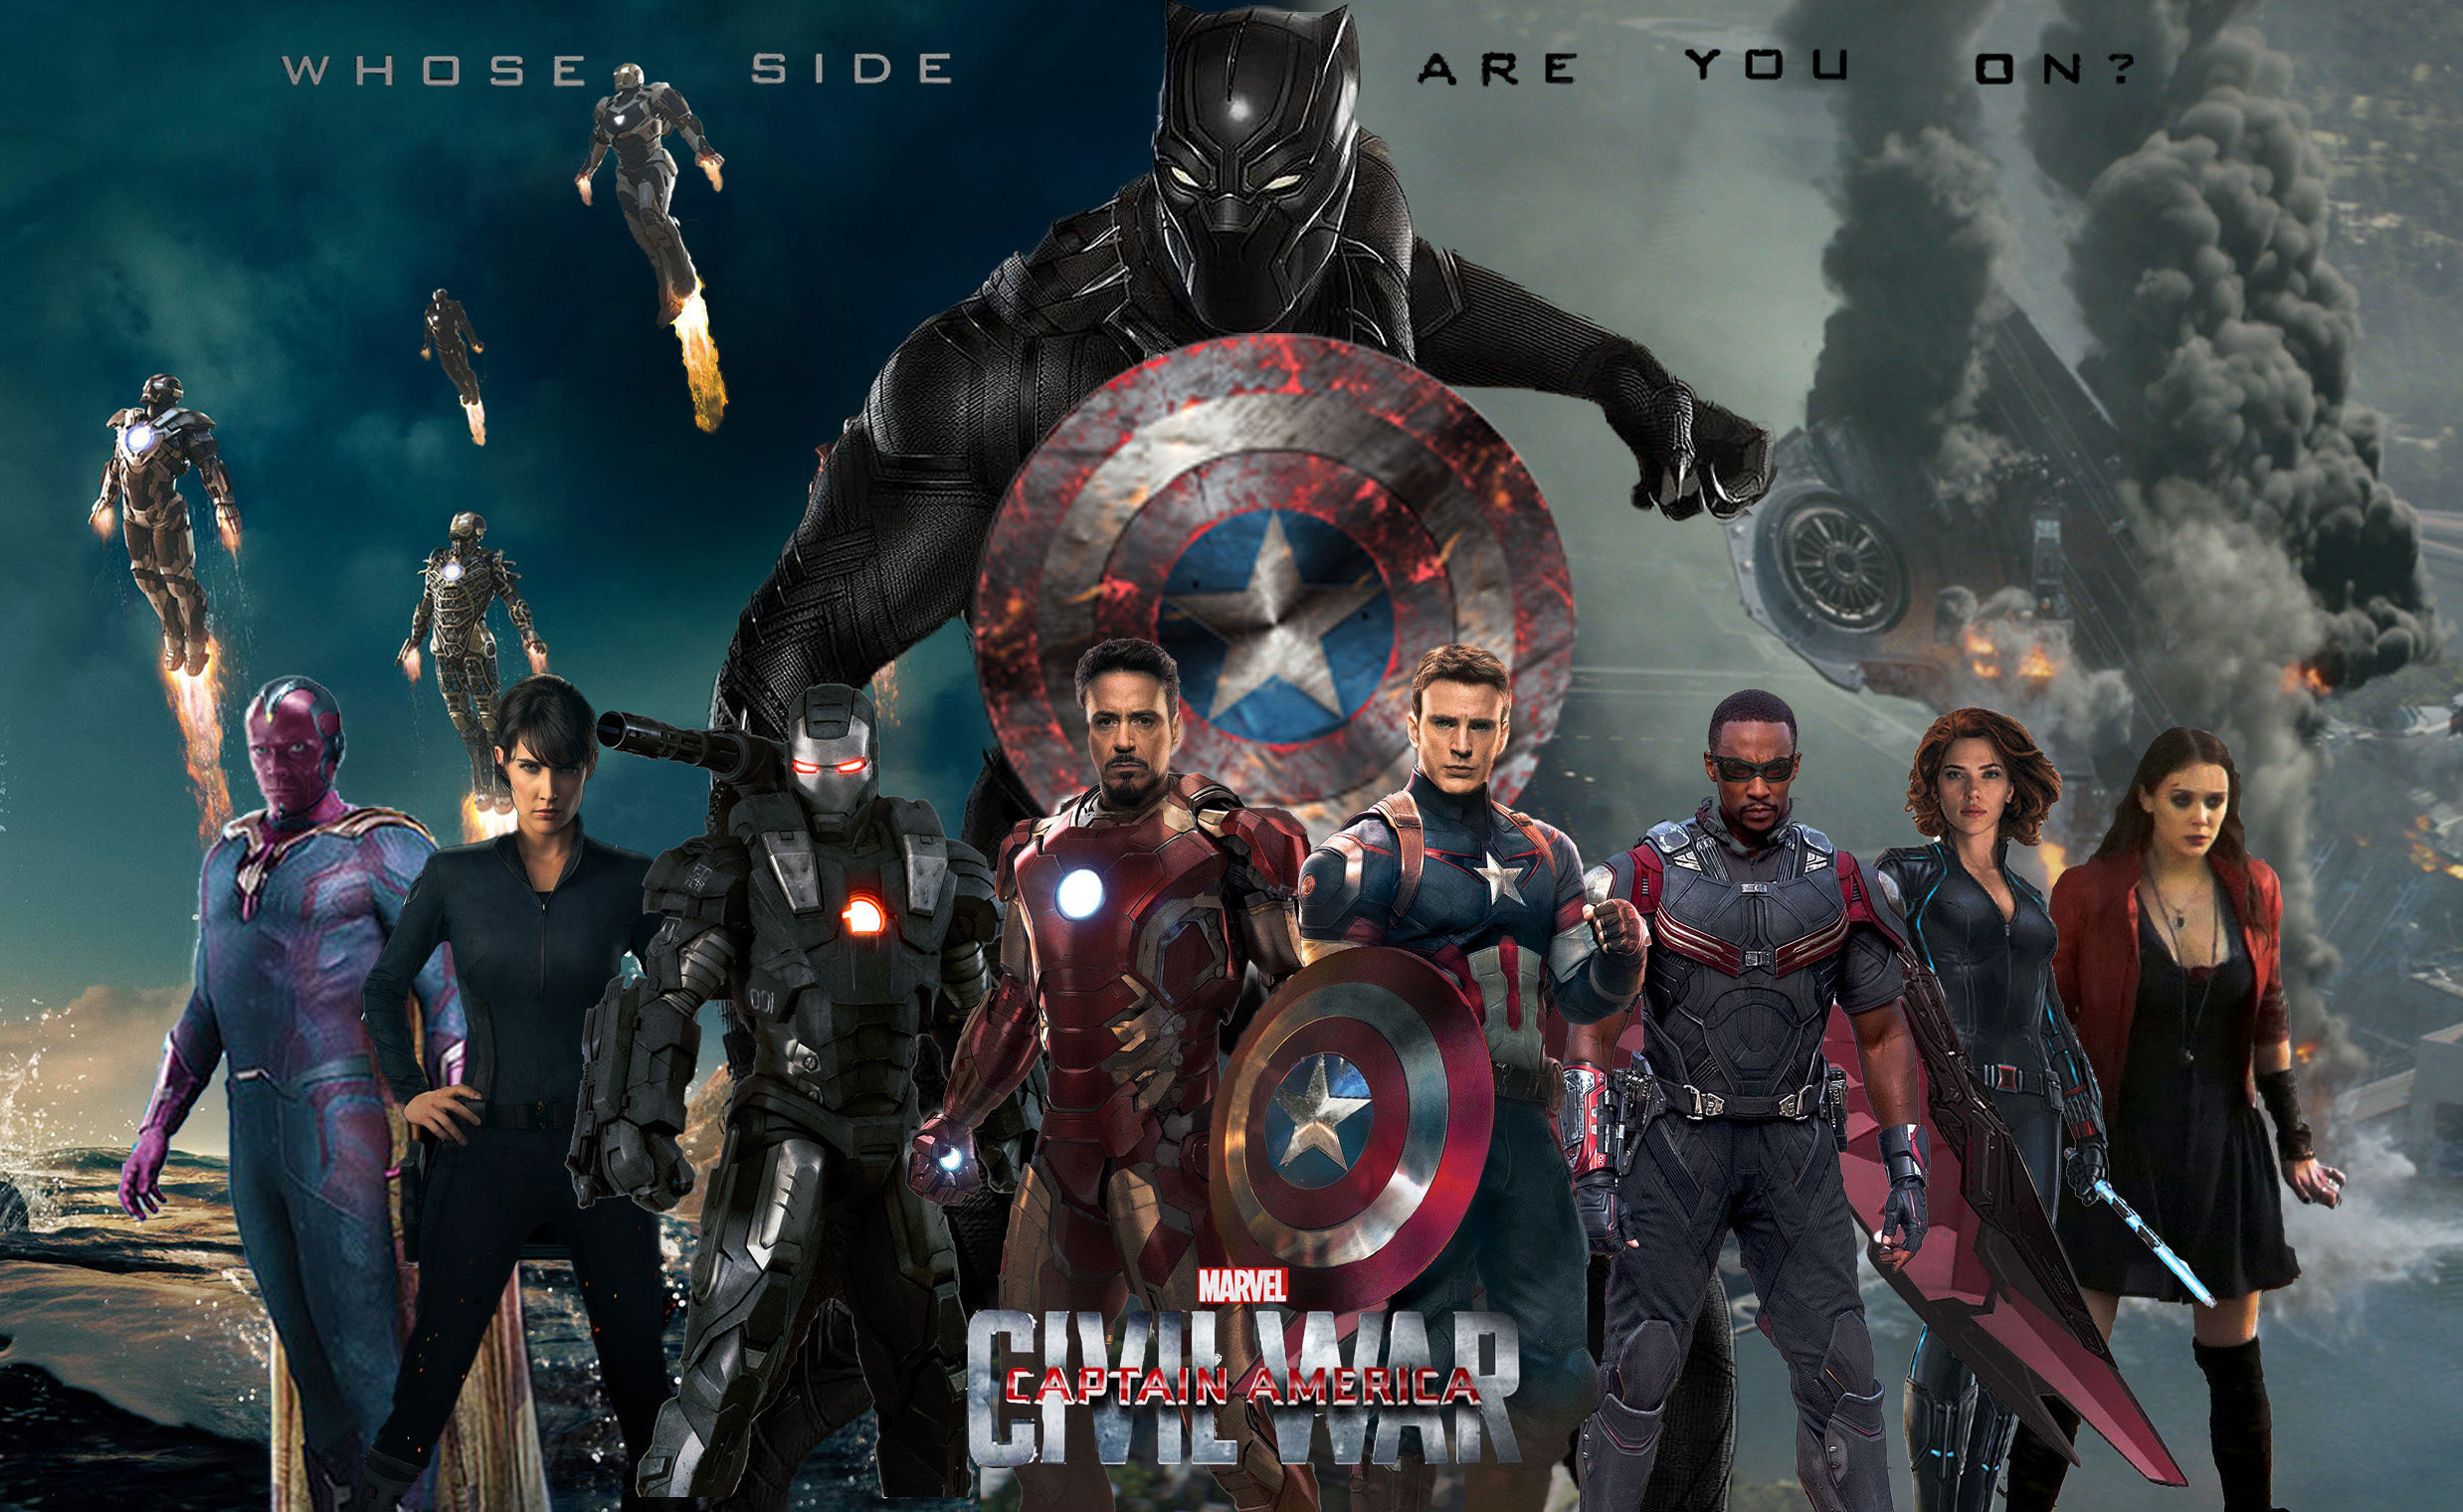 captain america civil war poster wallpaper captain america civil war 2476x1520